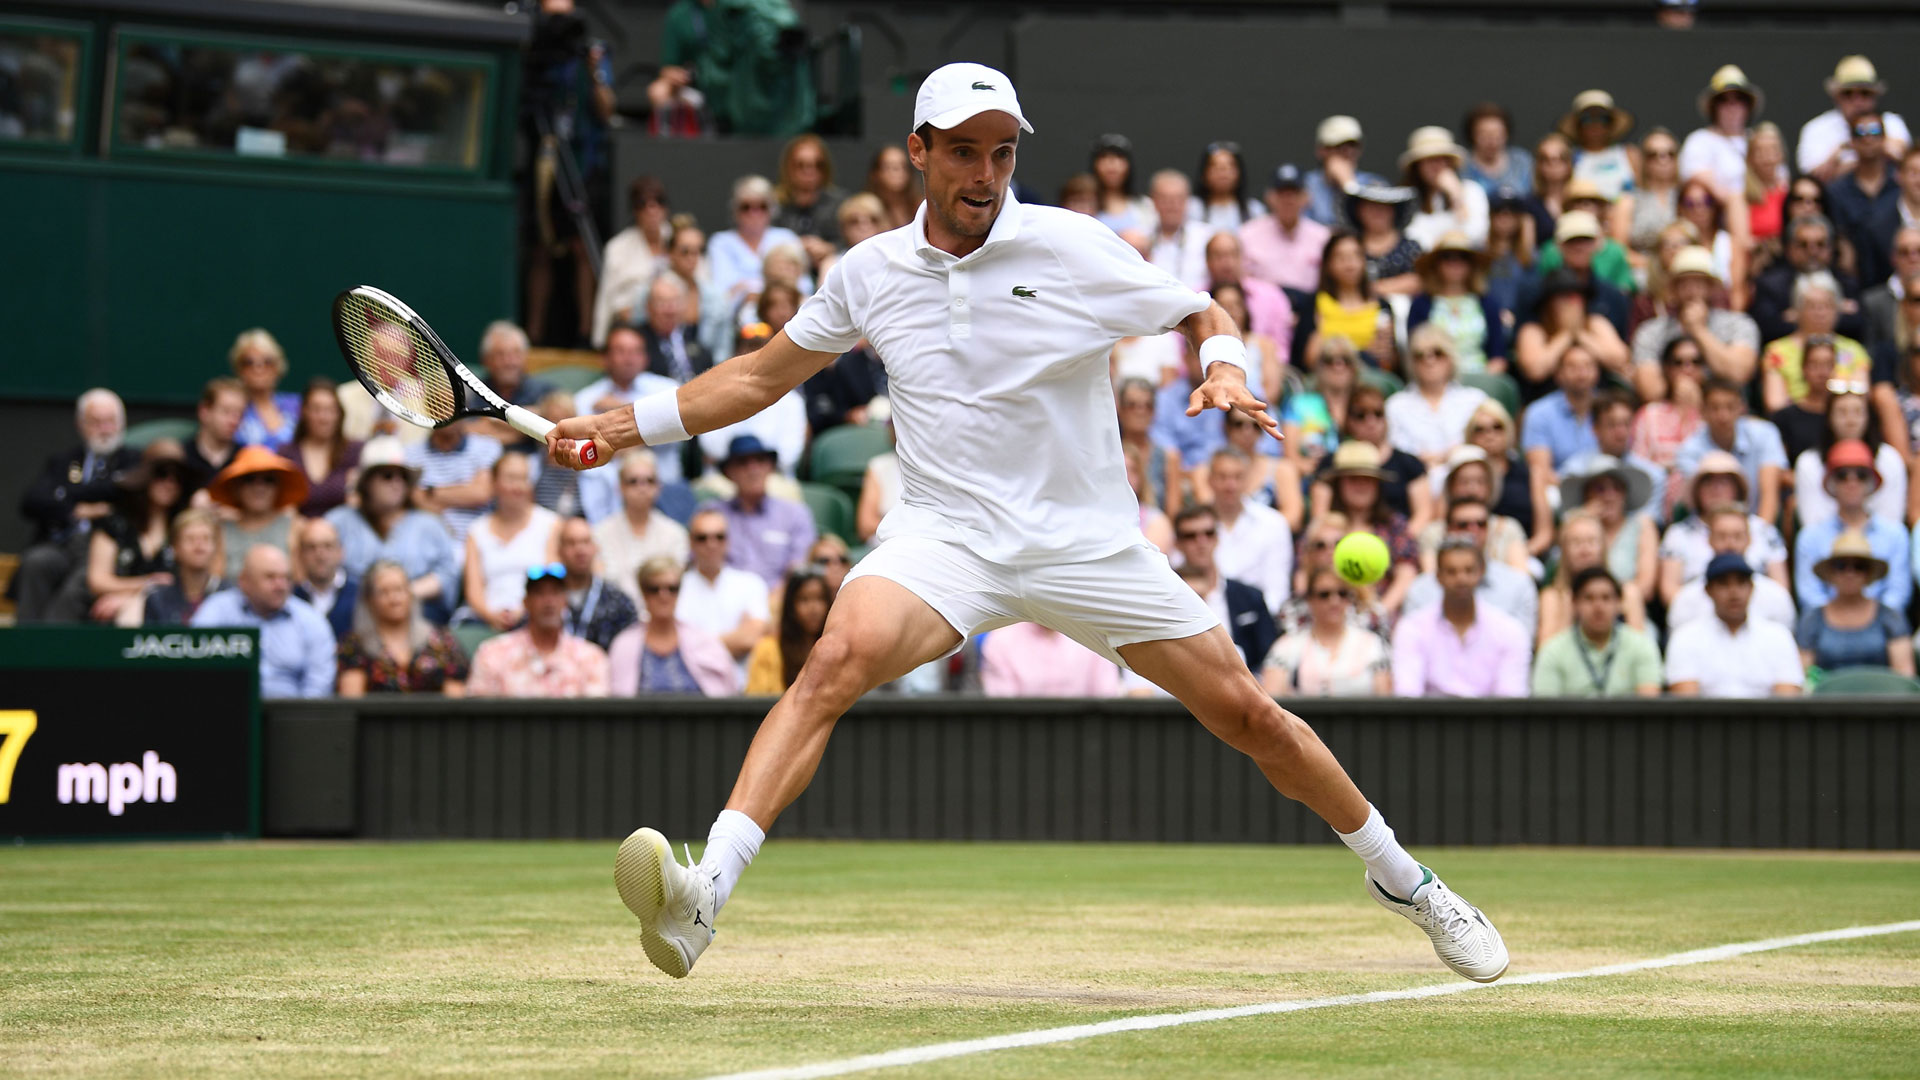 Bautista Agut hits a forehand in the Wimbledon 2019 semi-finals